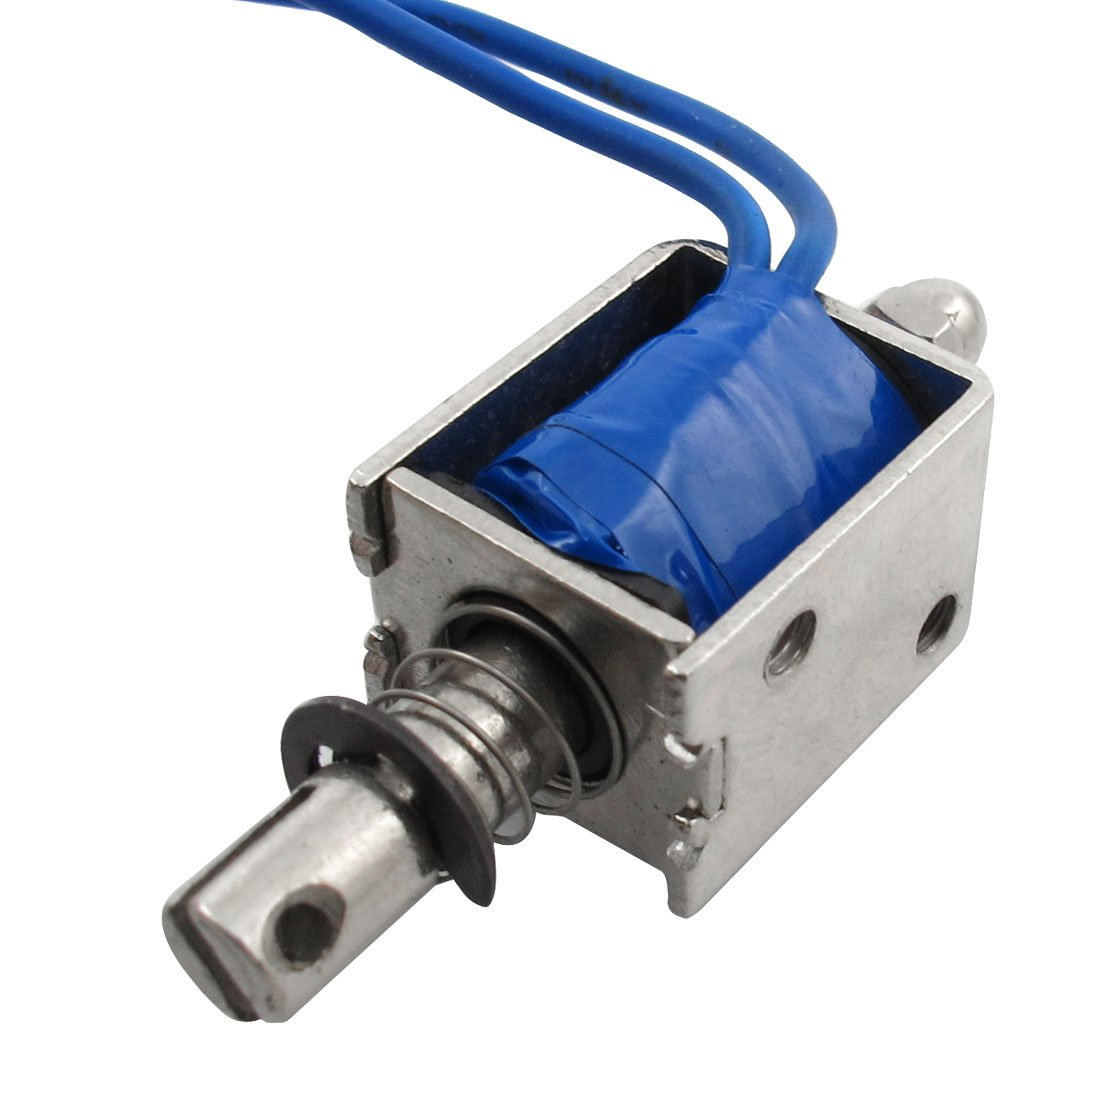 DC 12V 500mA Open Frame Push Type Solenoid Electromagnet 7mm Stroke Sourcingmap a12092000ux0151